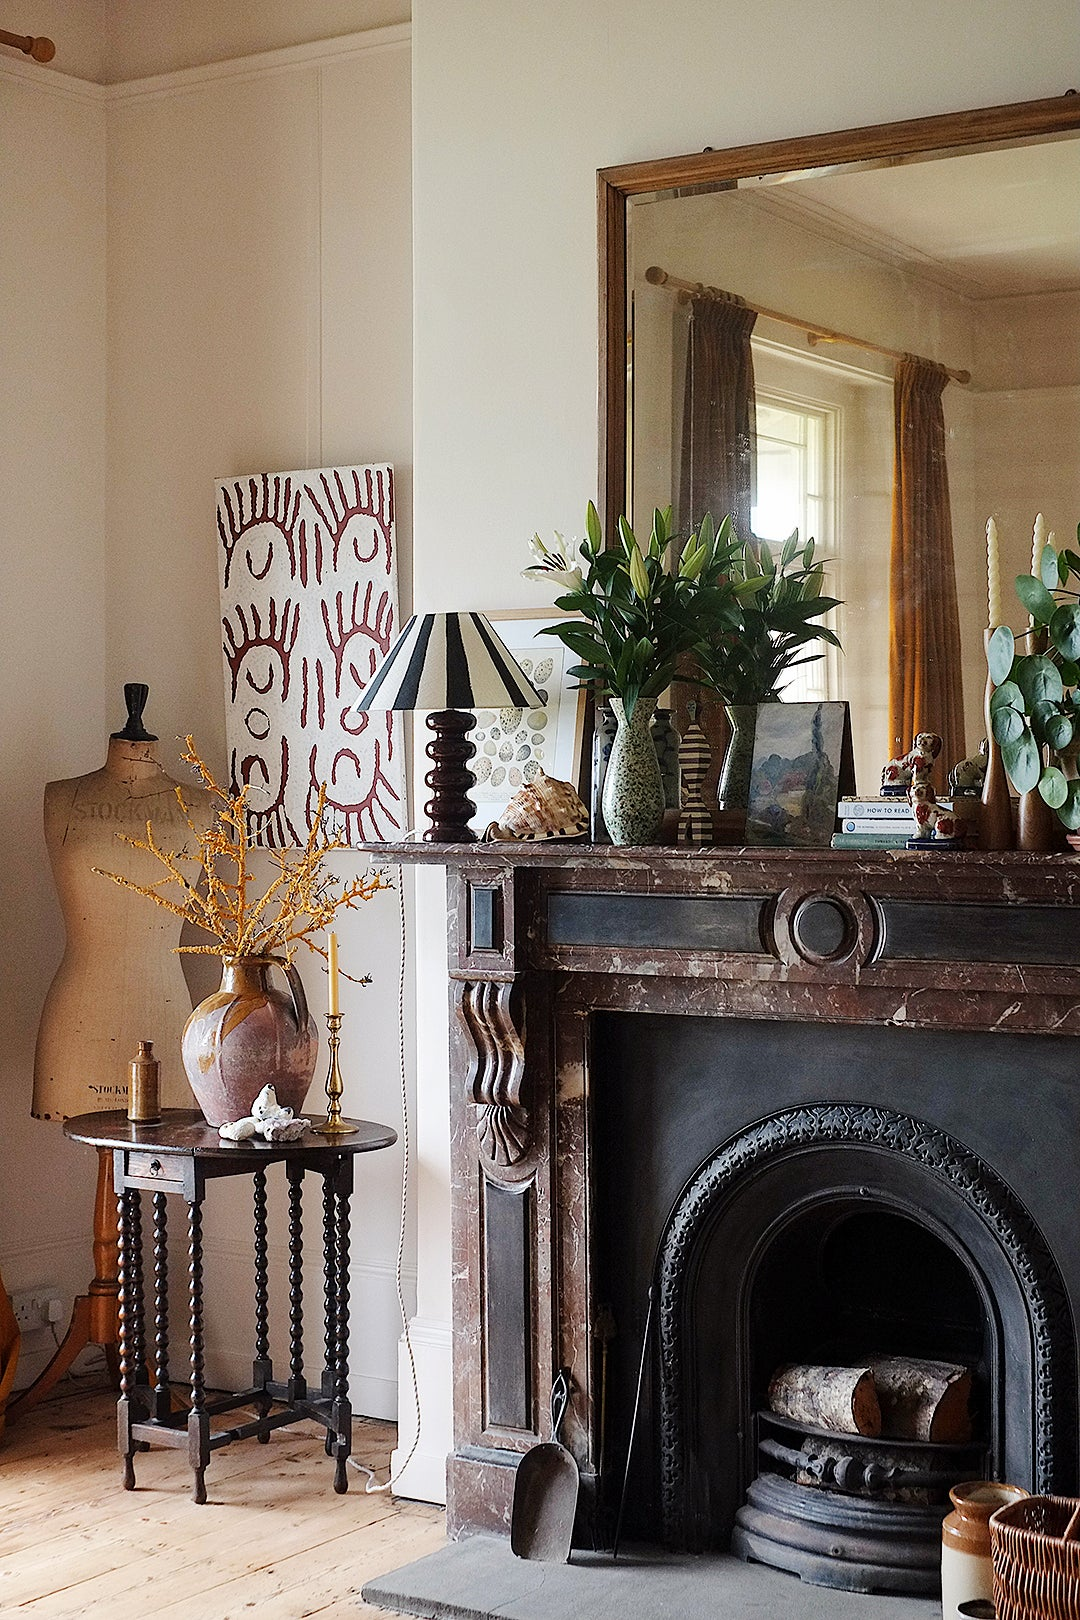 For This 200-Year-Old House Refresh, It Was Important to Not Lose the Romance